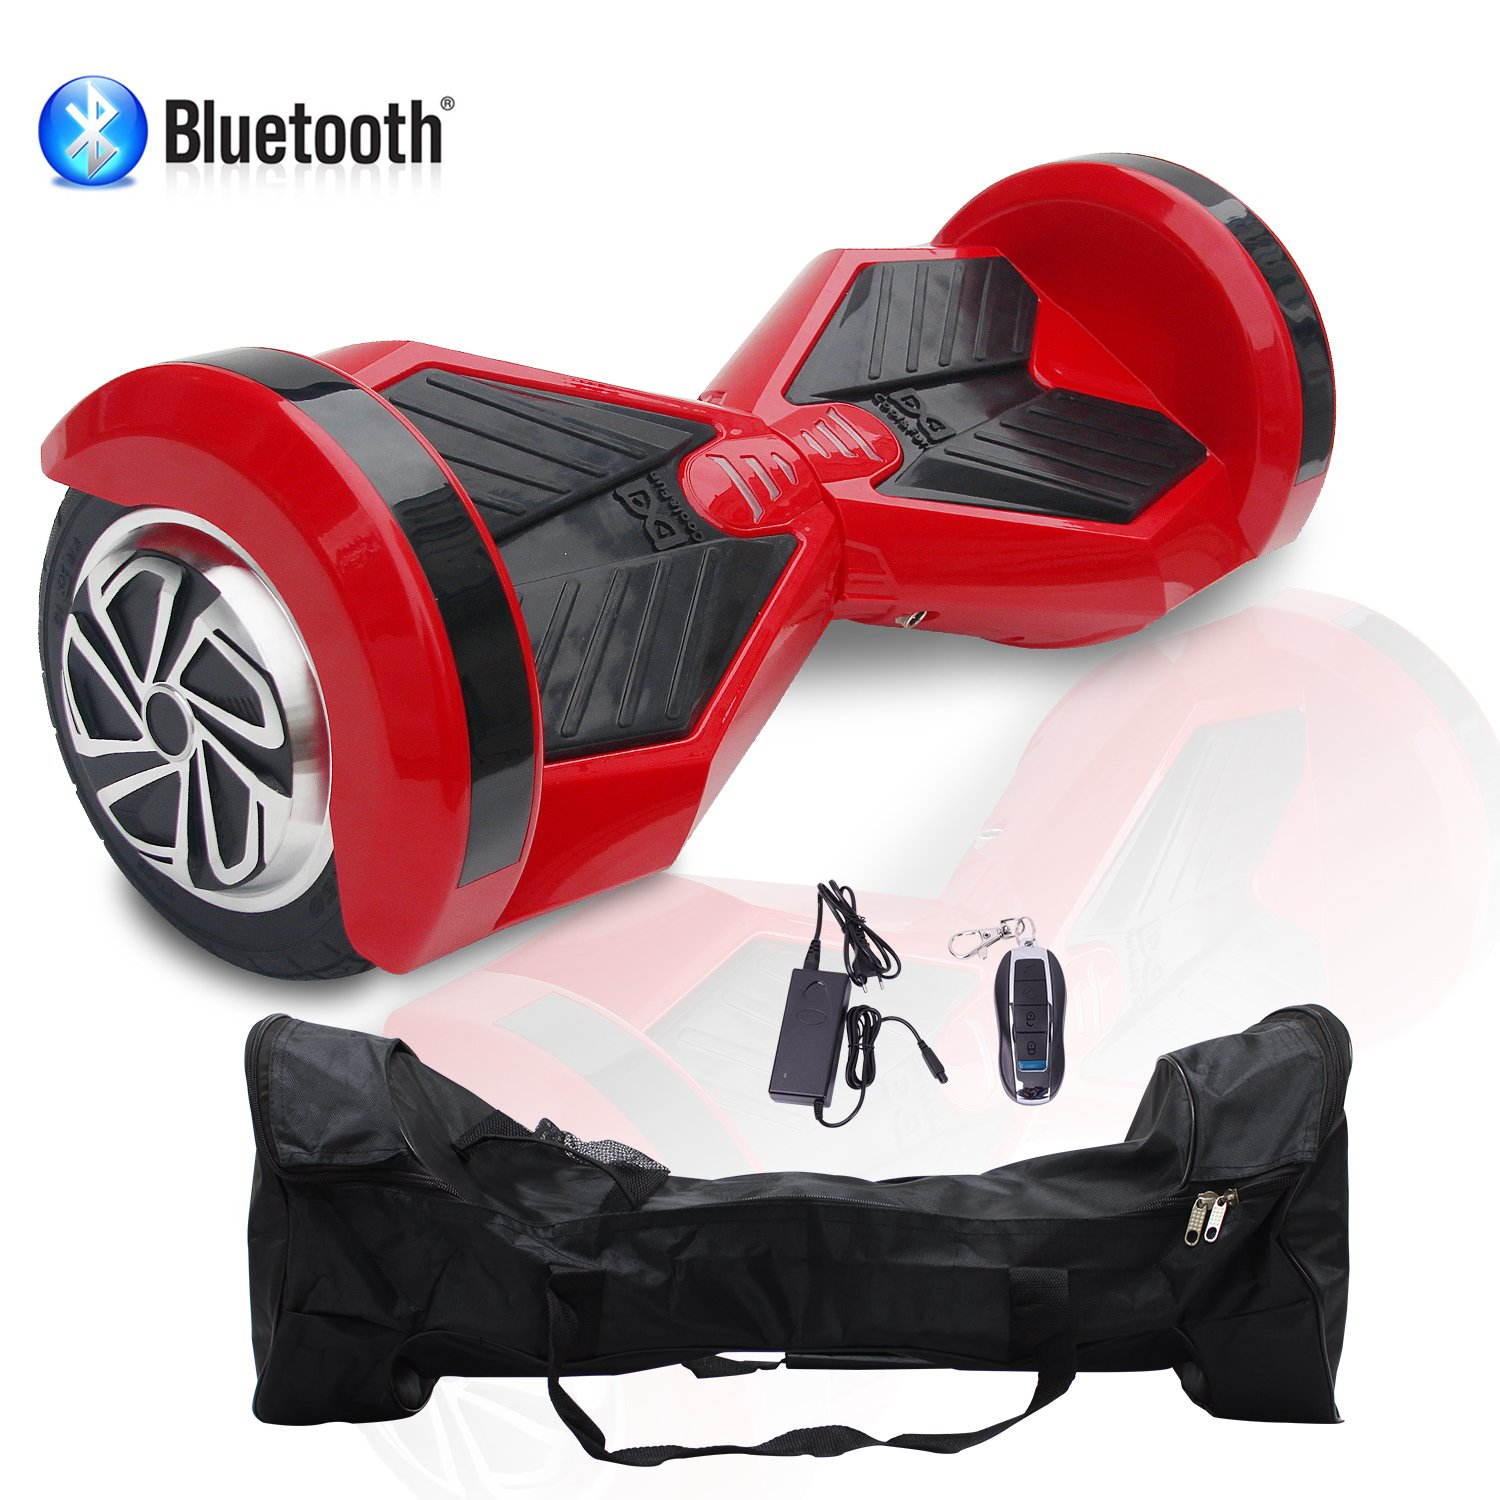 COLORWAY Smart Scooter Electric Auto Balance Hoverboard 8 Inch Self Balancing with Bluetooth /& LED Self Balance E-Skateboard